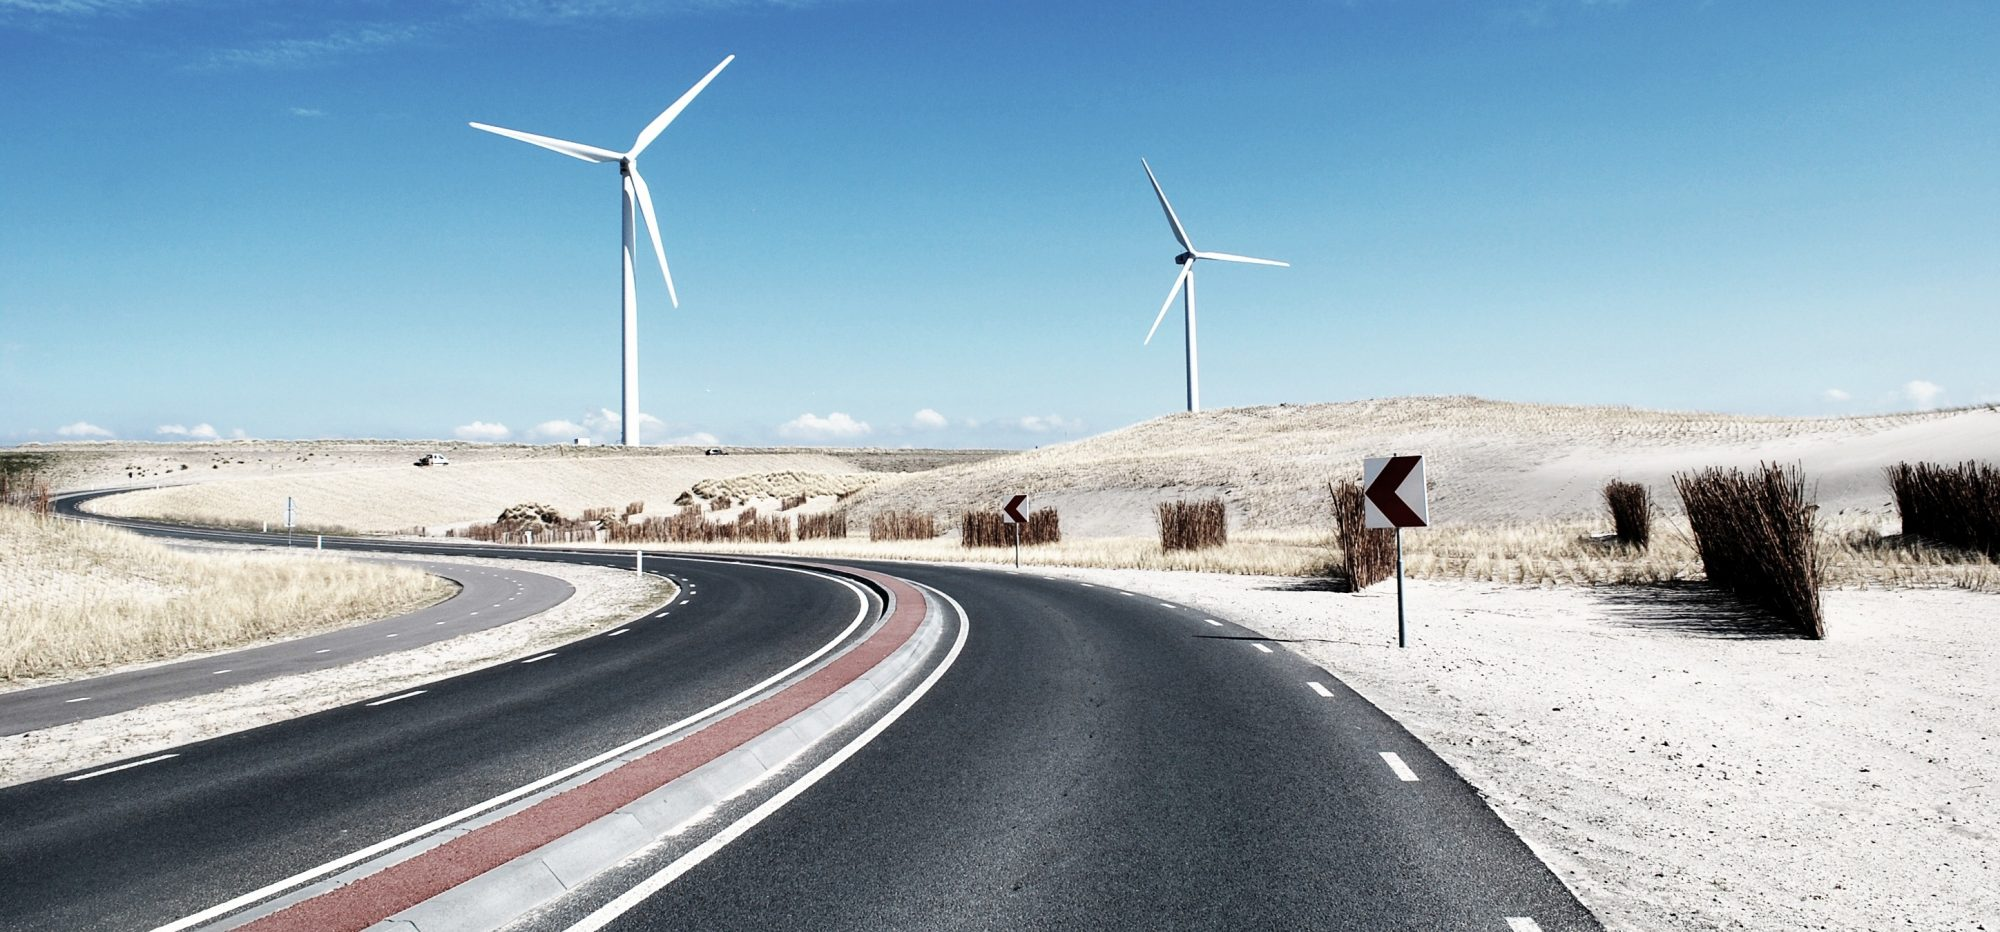 cropped-Capital-projects-and-contracts-header-wind-turbine-road-.jpg